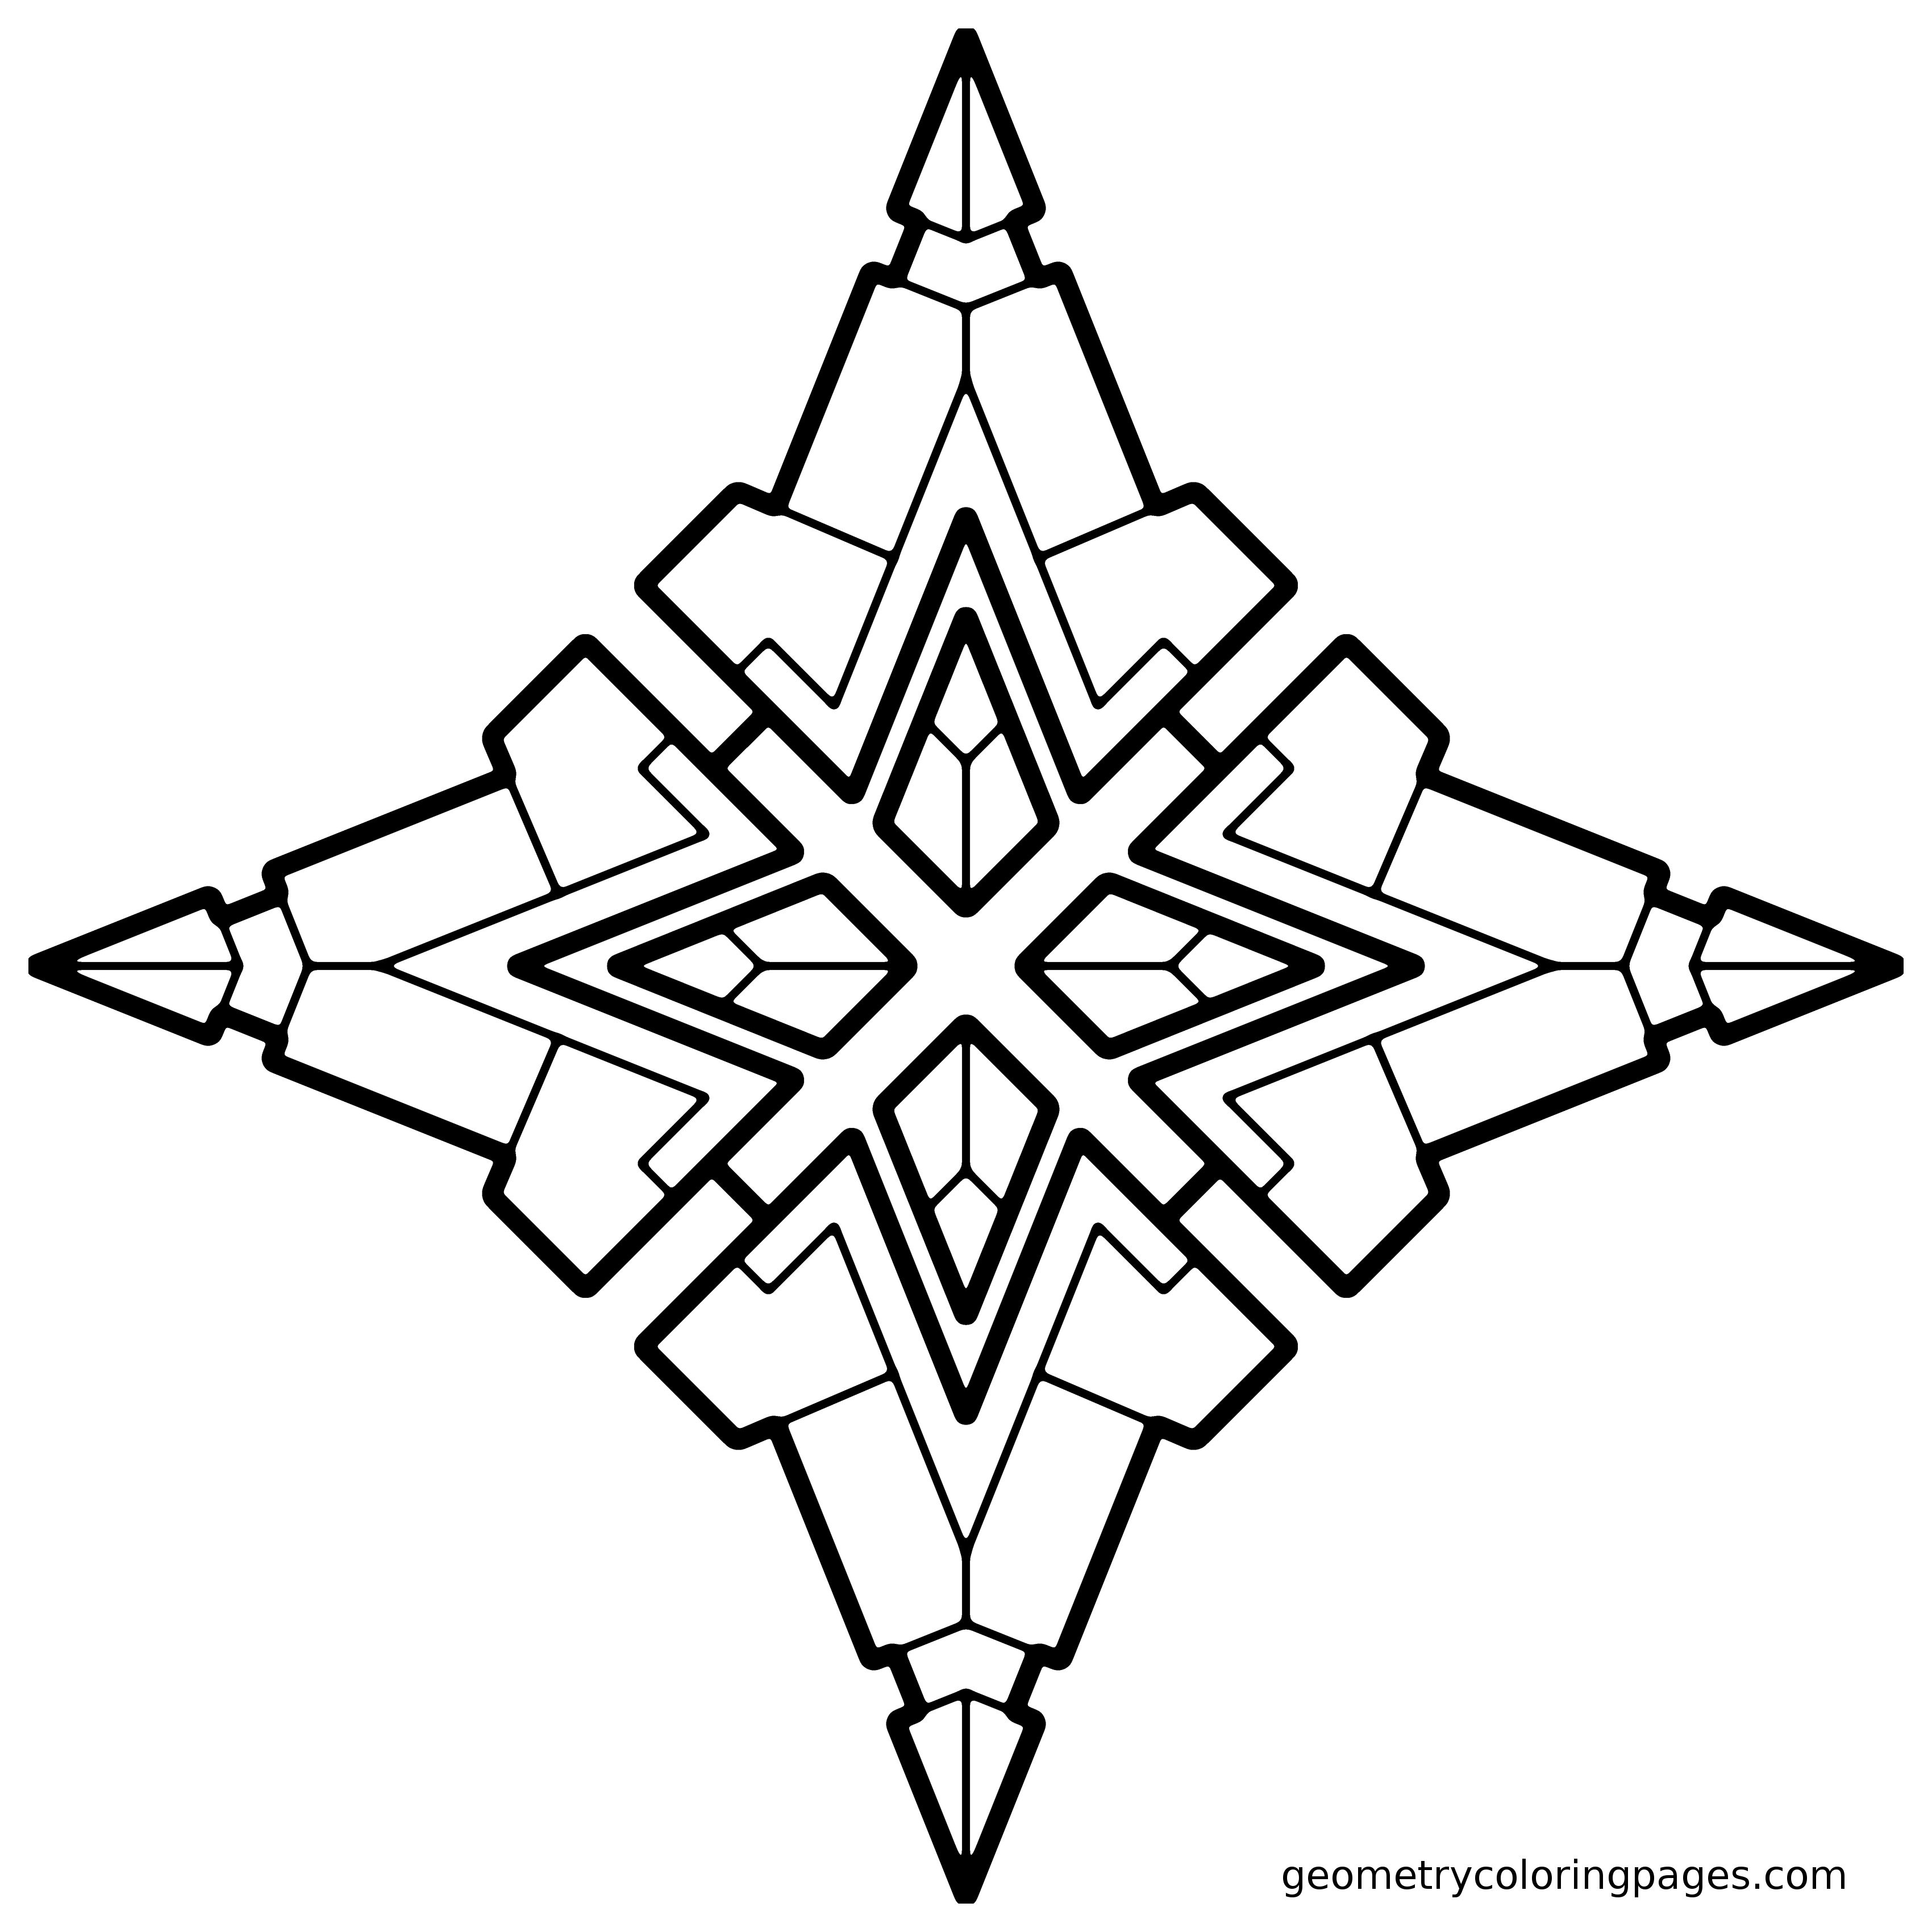 Geometry coloring page quad star adult coloring pages Geometric coloring books for adults